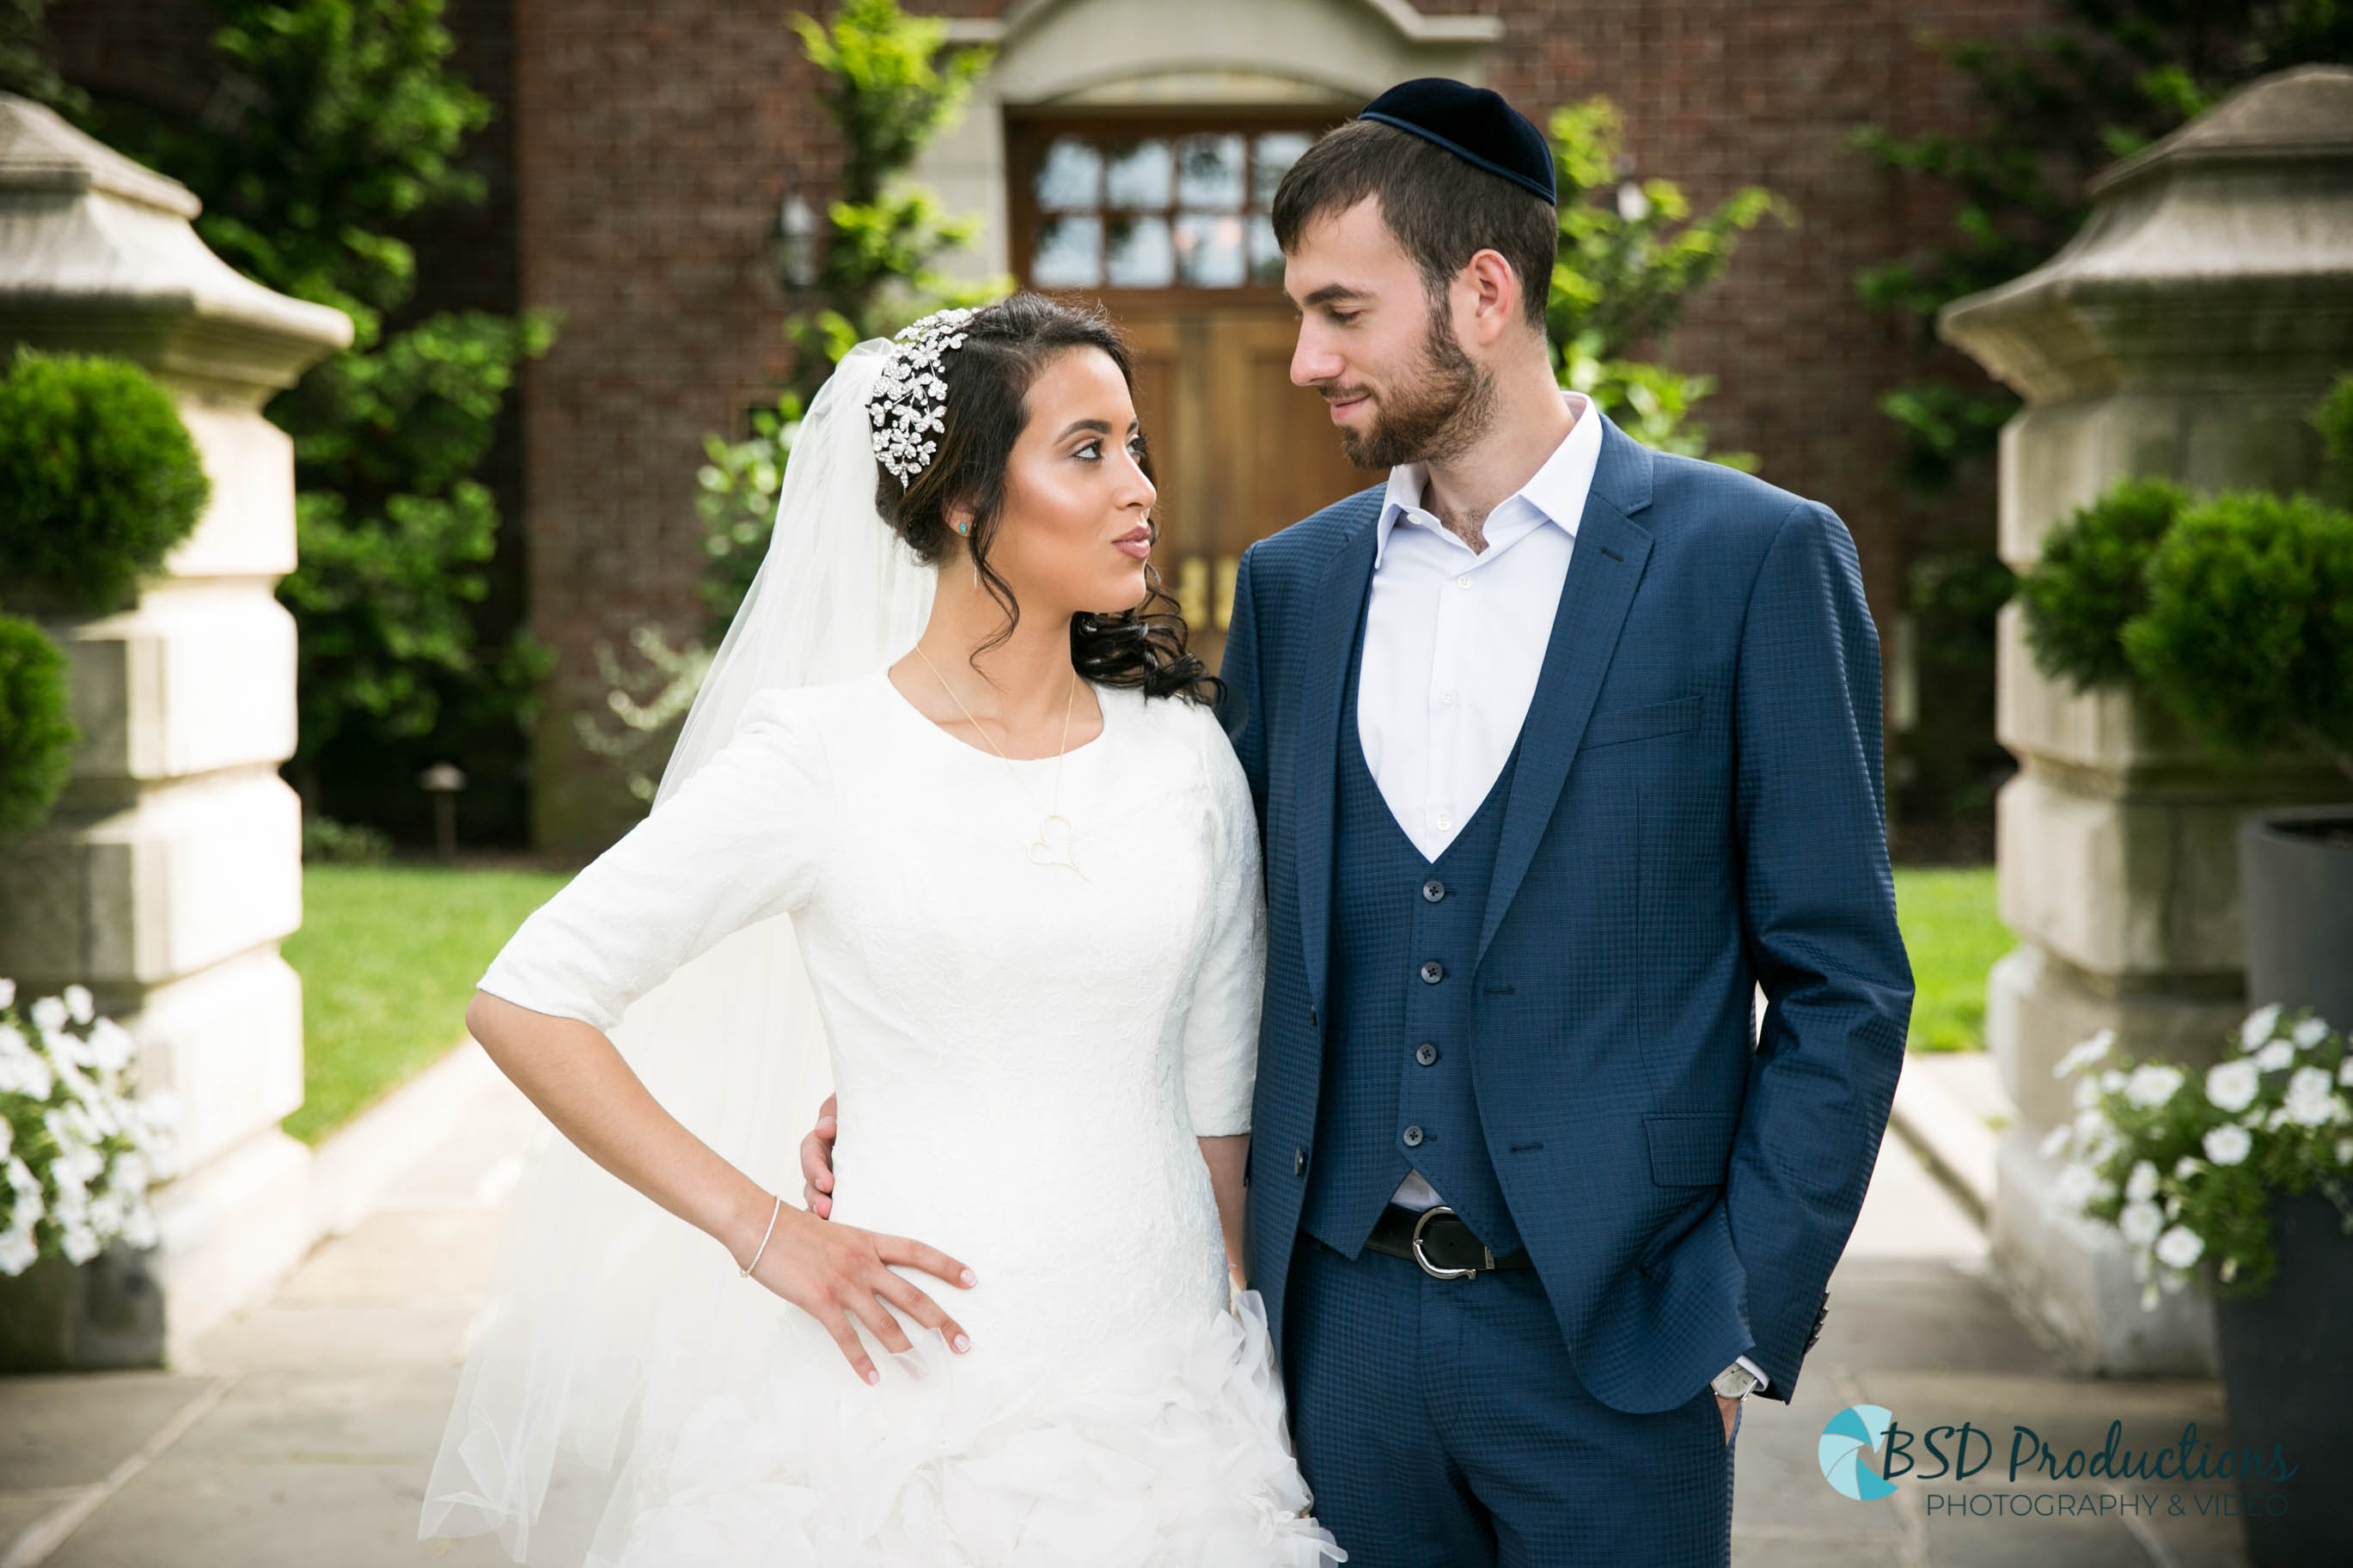 UH5A2491 Wedding – BSD Productions Photography